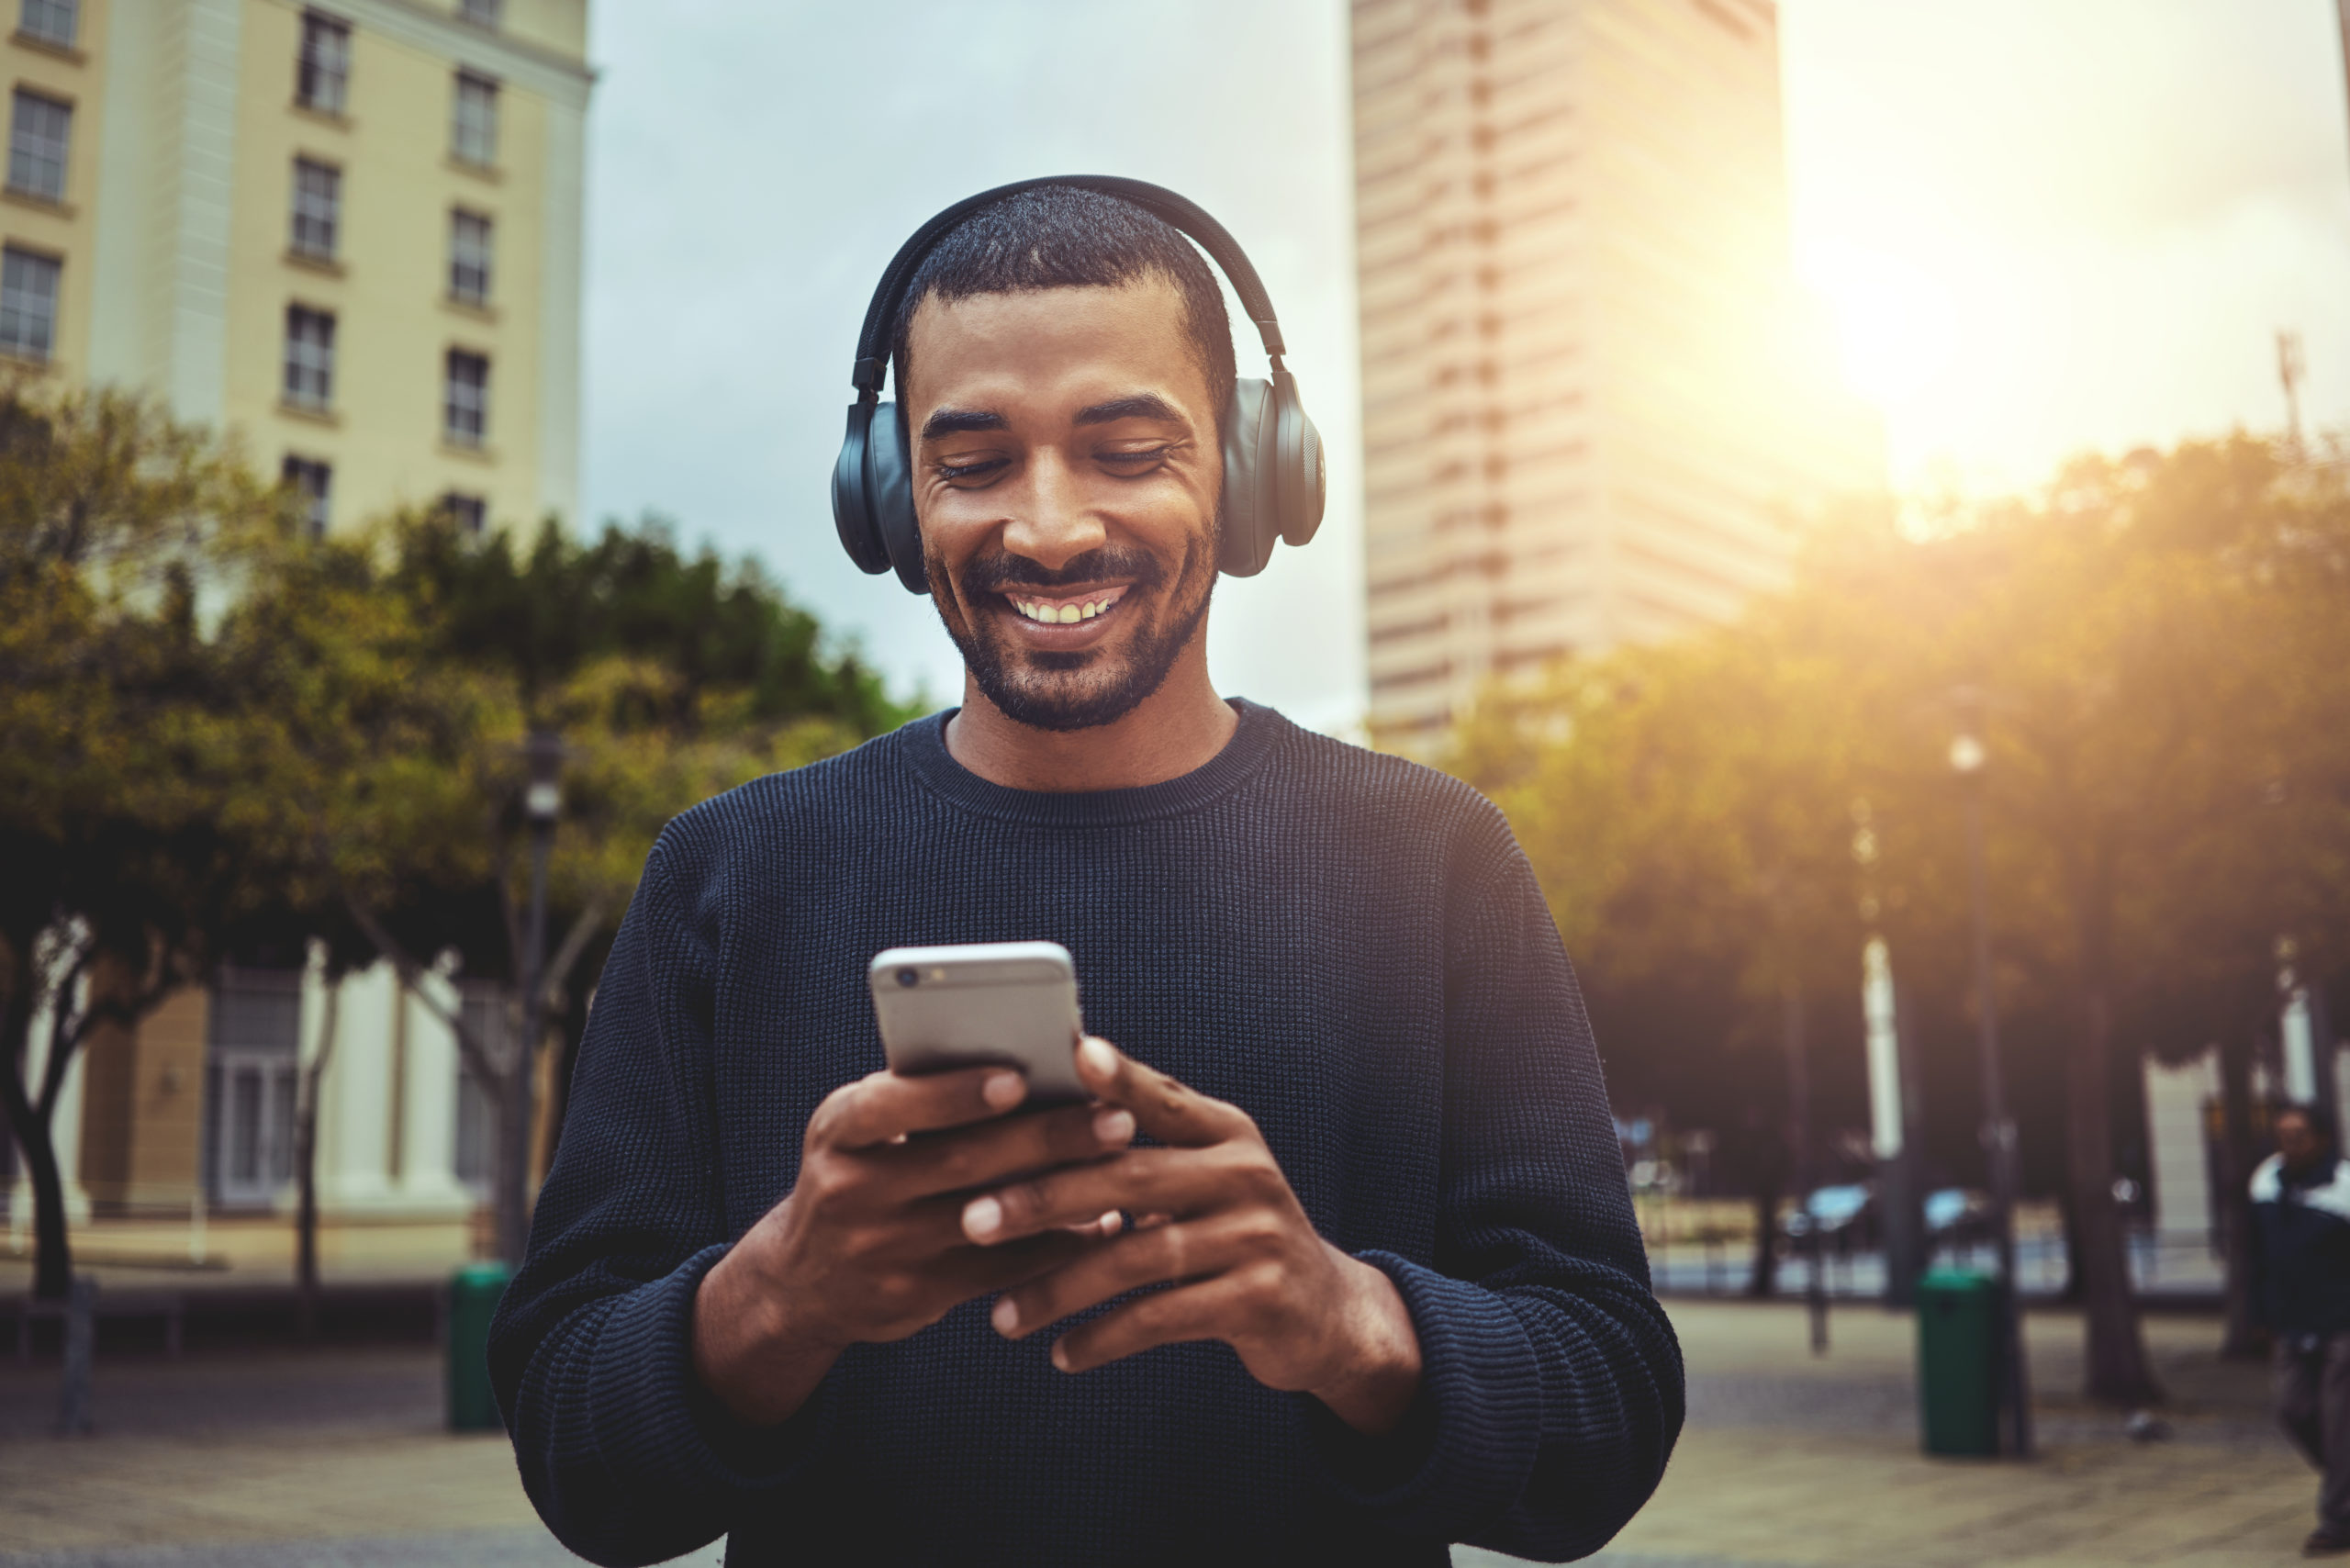 Choosing the Best Music for Your Videos: A Crash Course - The Songtradr Blog